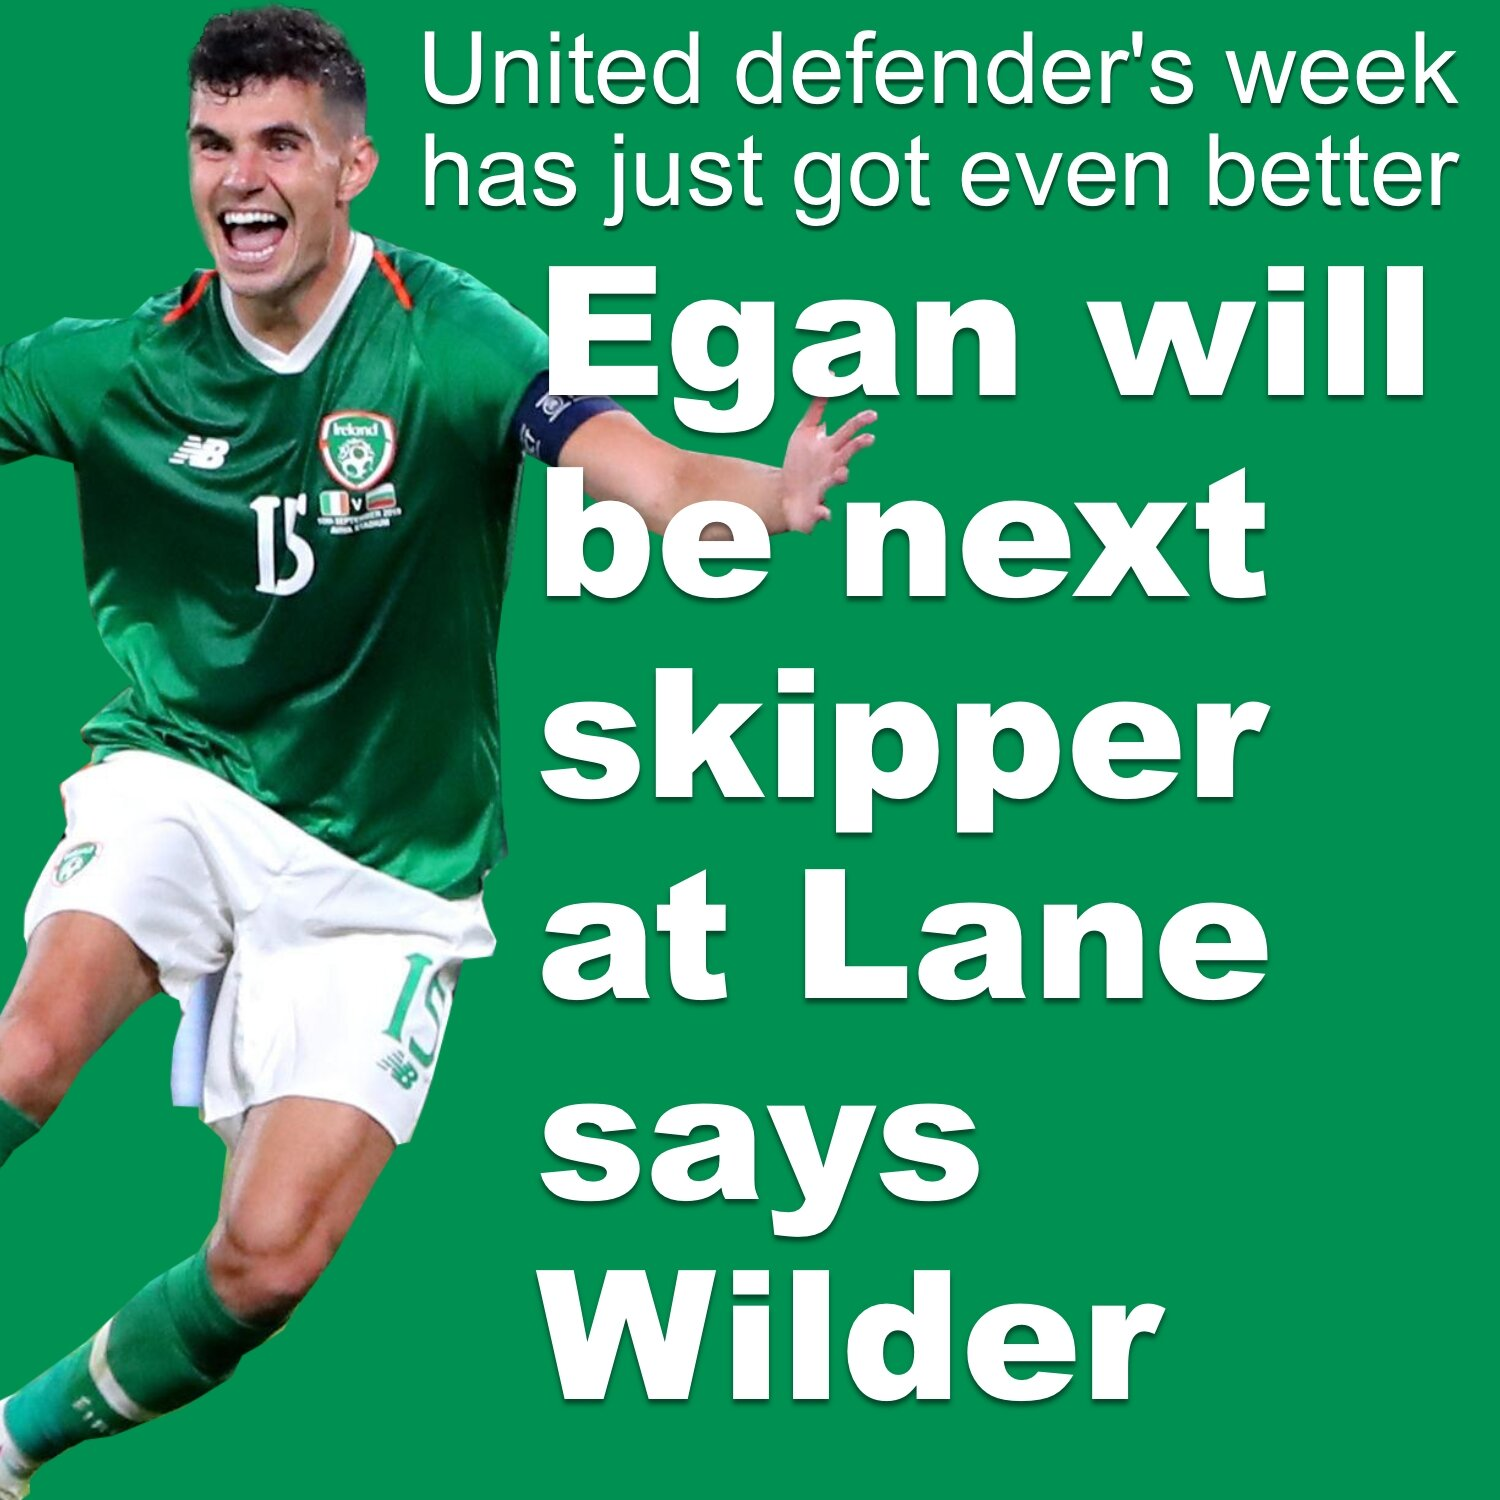 Republic of  Ireland defender John Egan will next Sheffield United skipper when time comes says Blades boss.